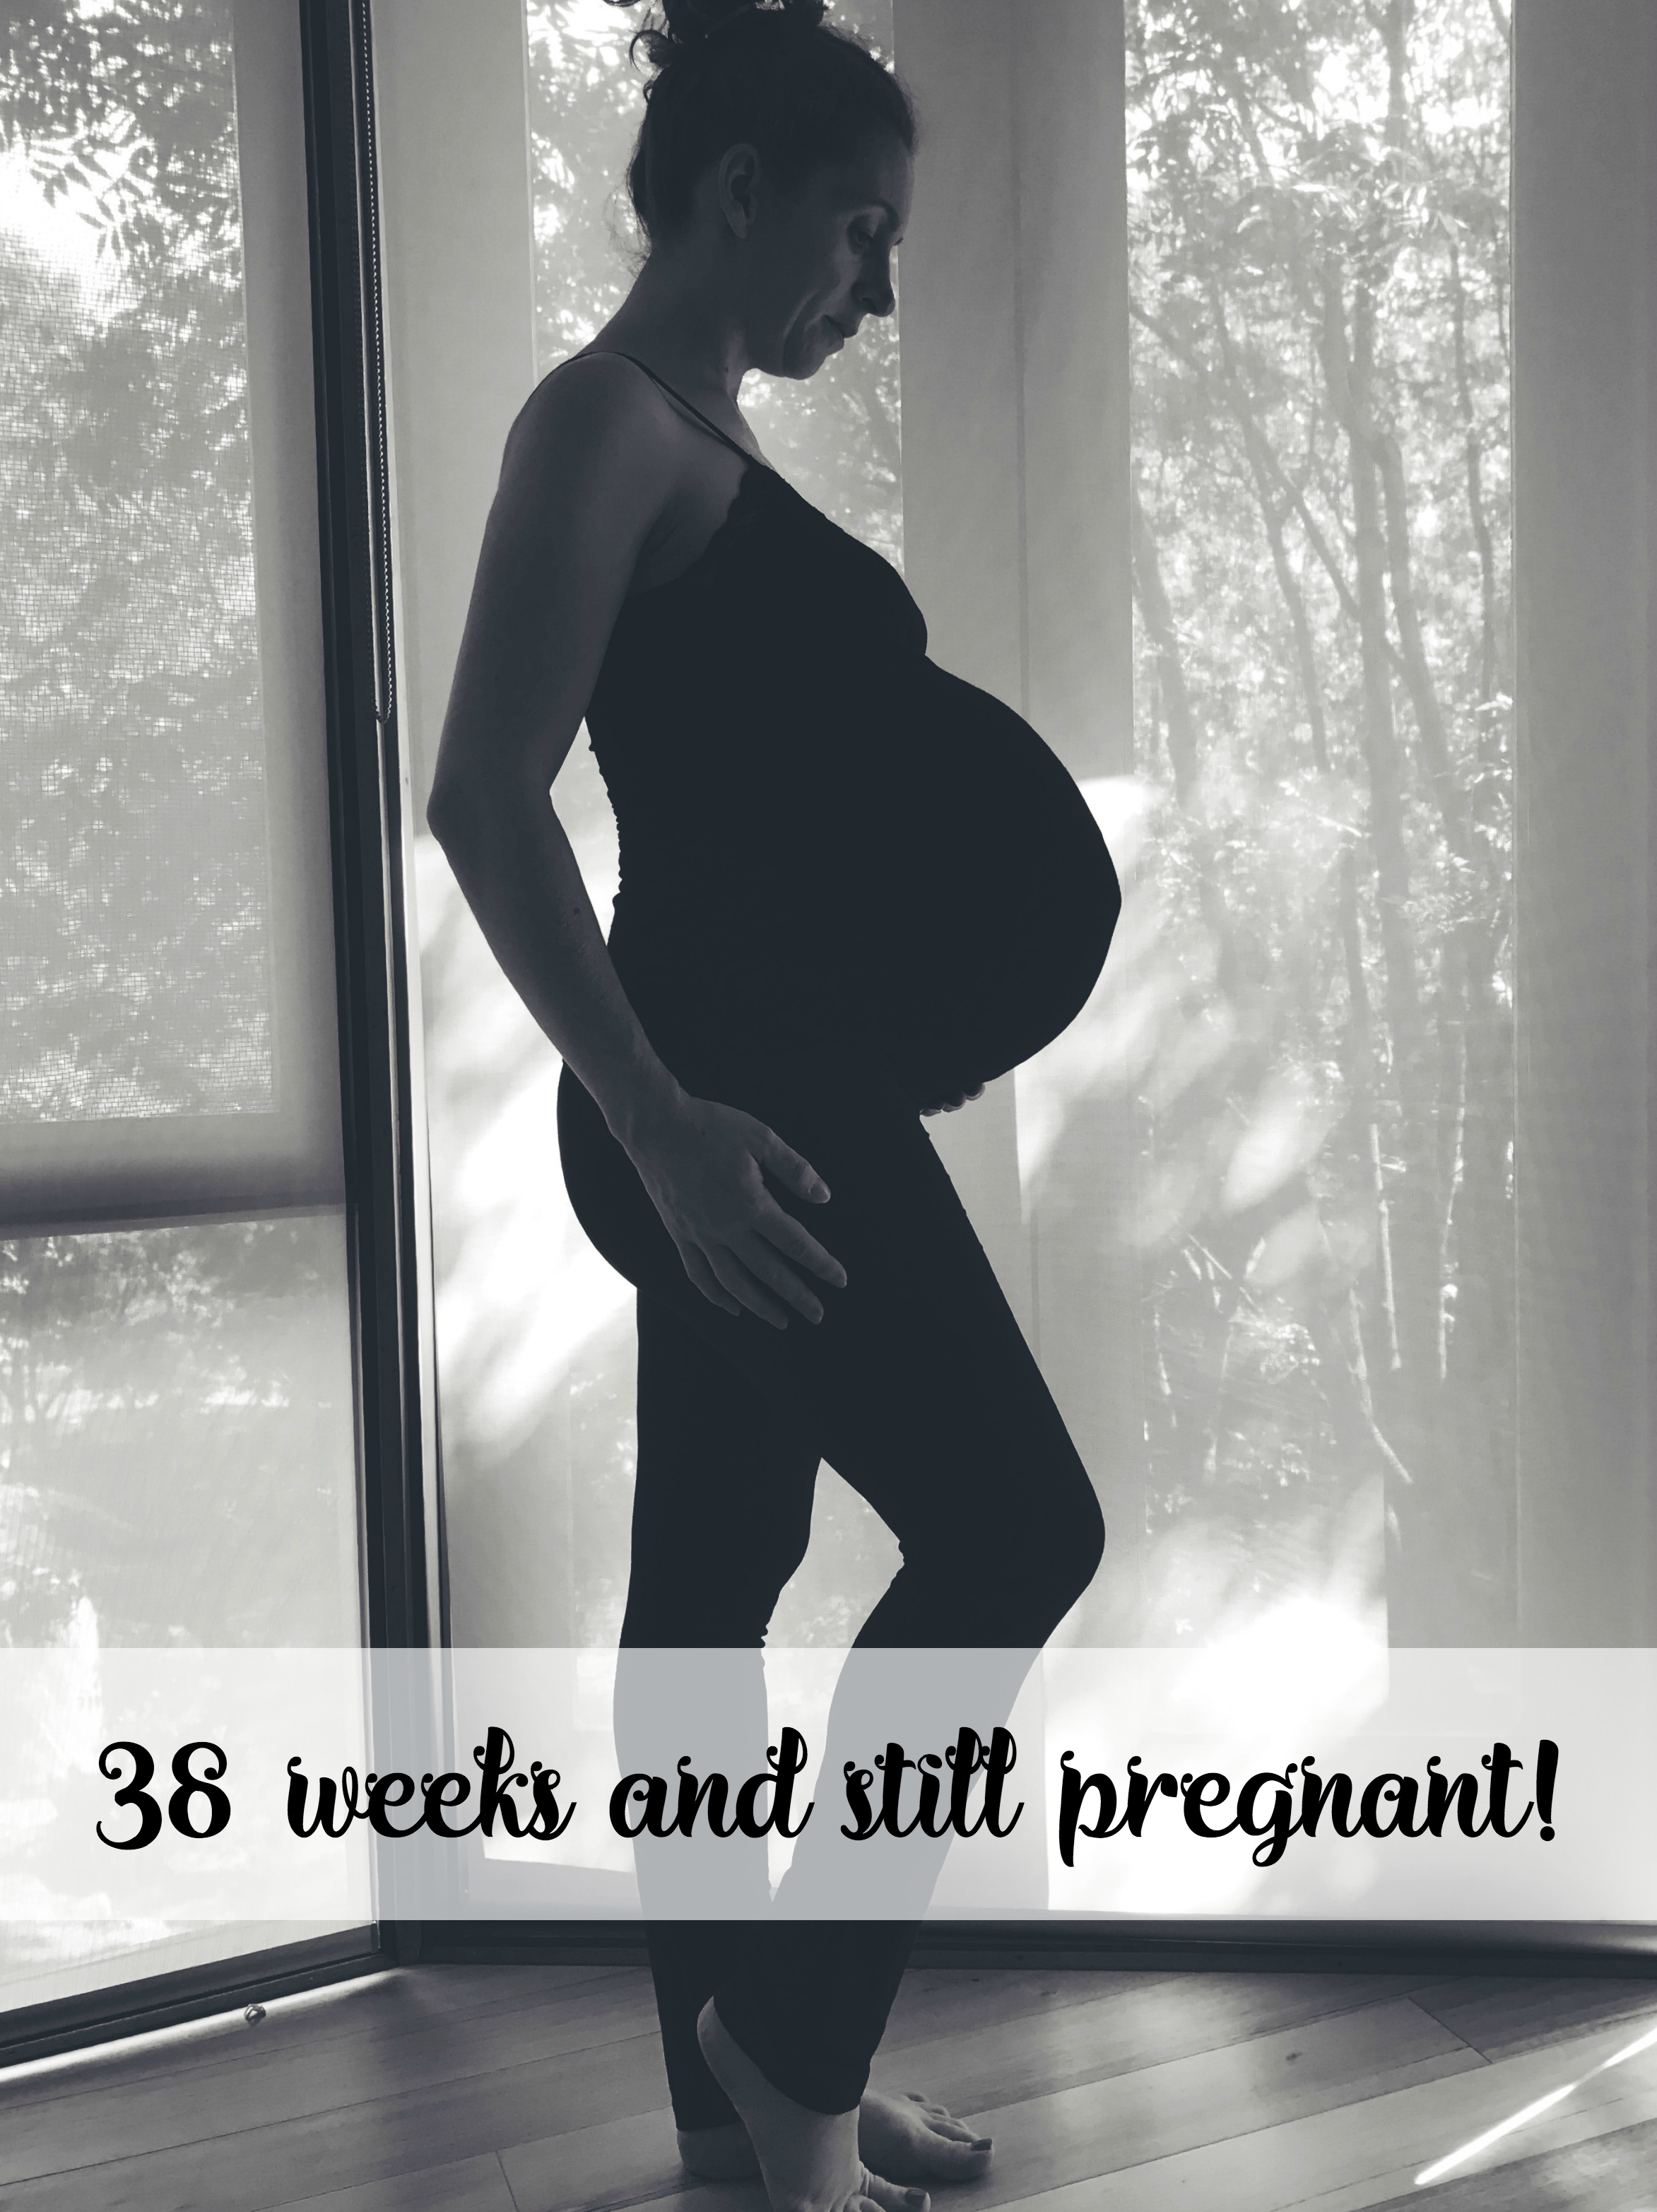 38 weeks and still pregnant